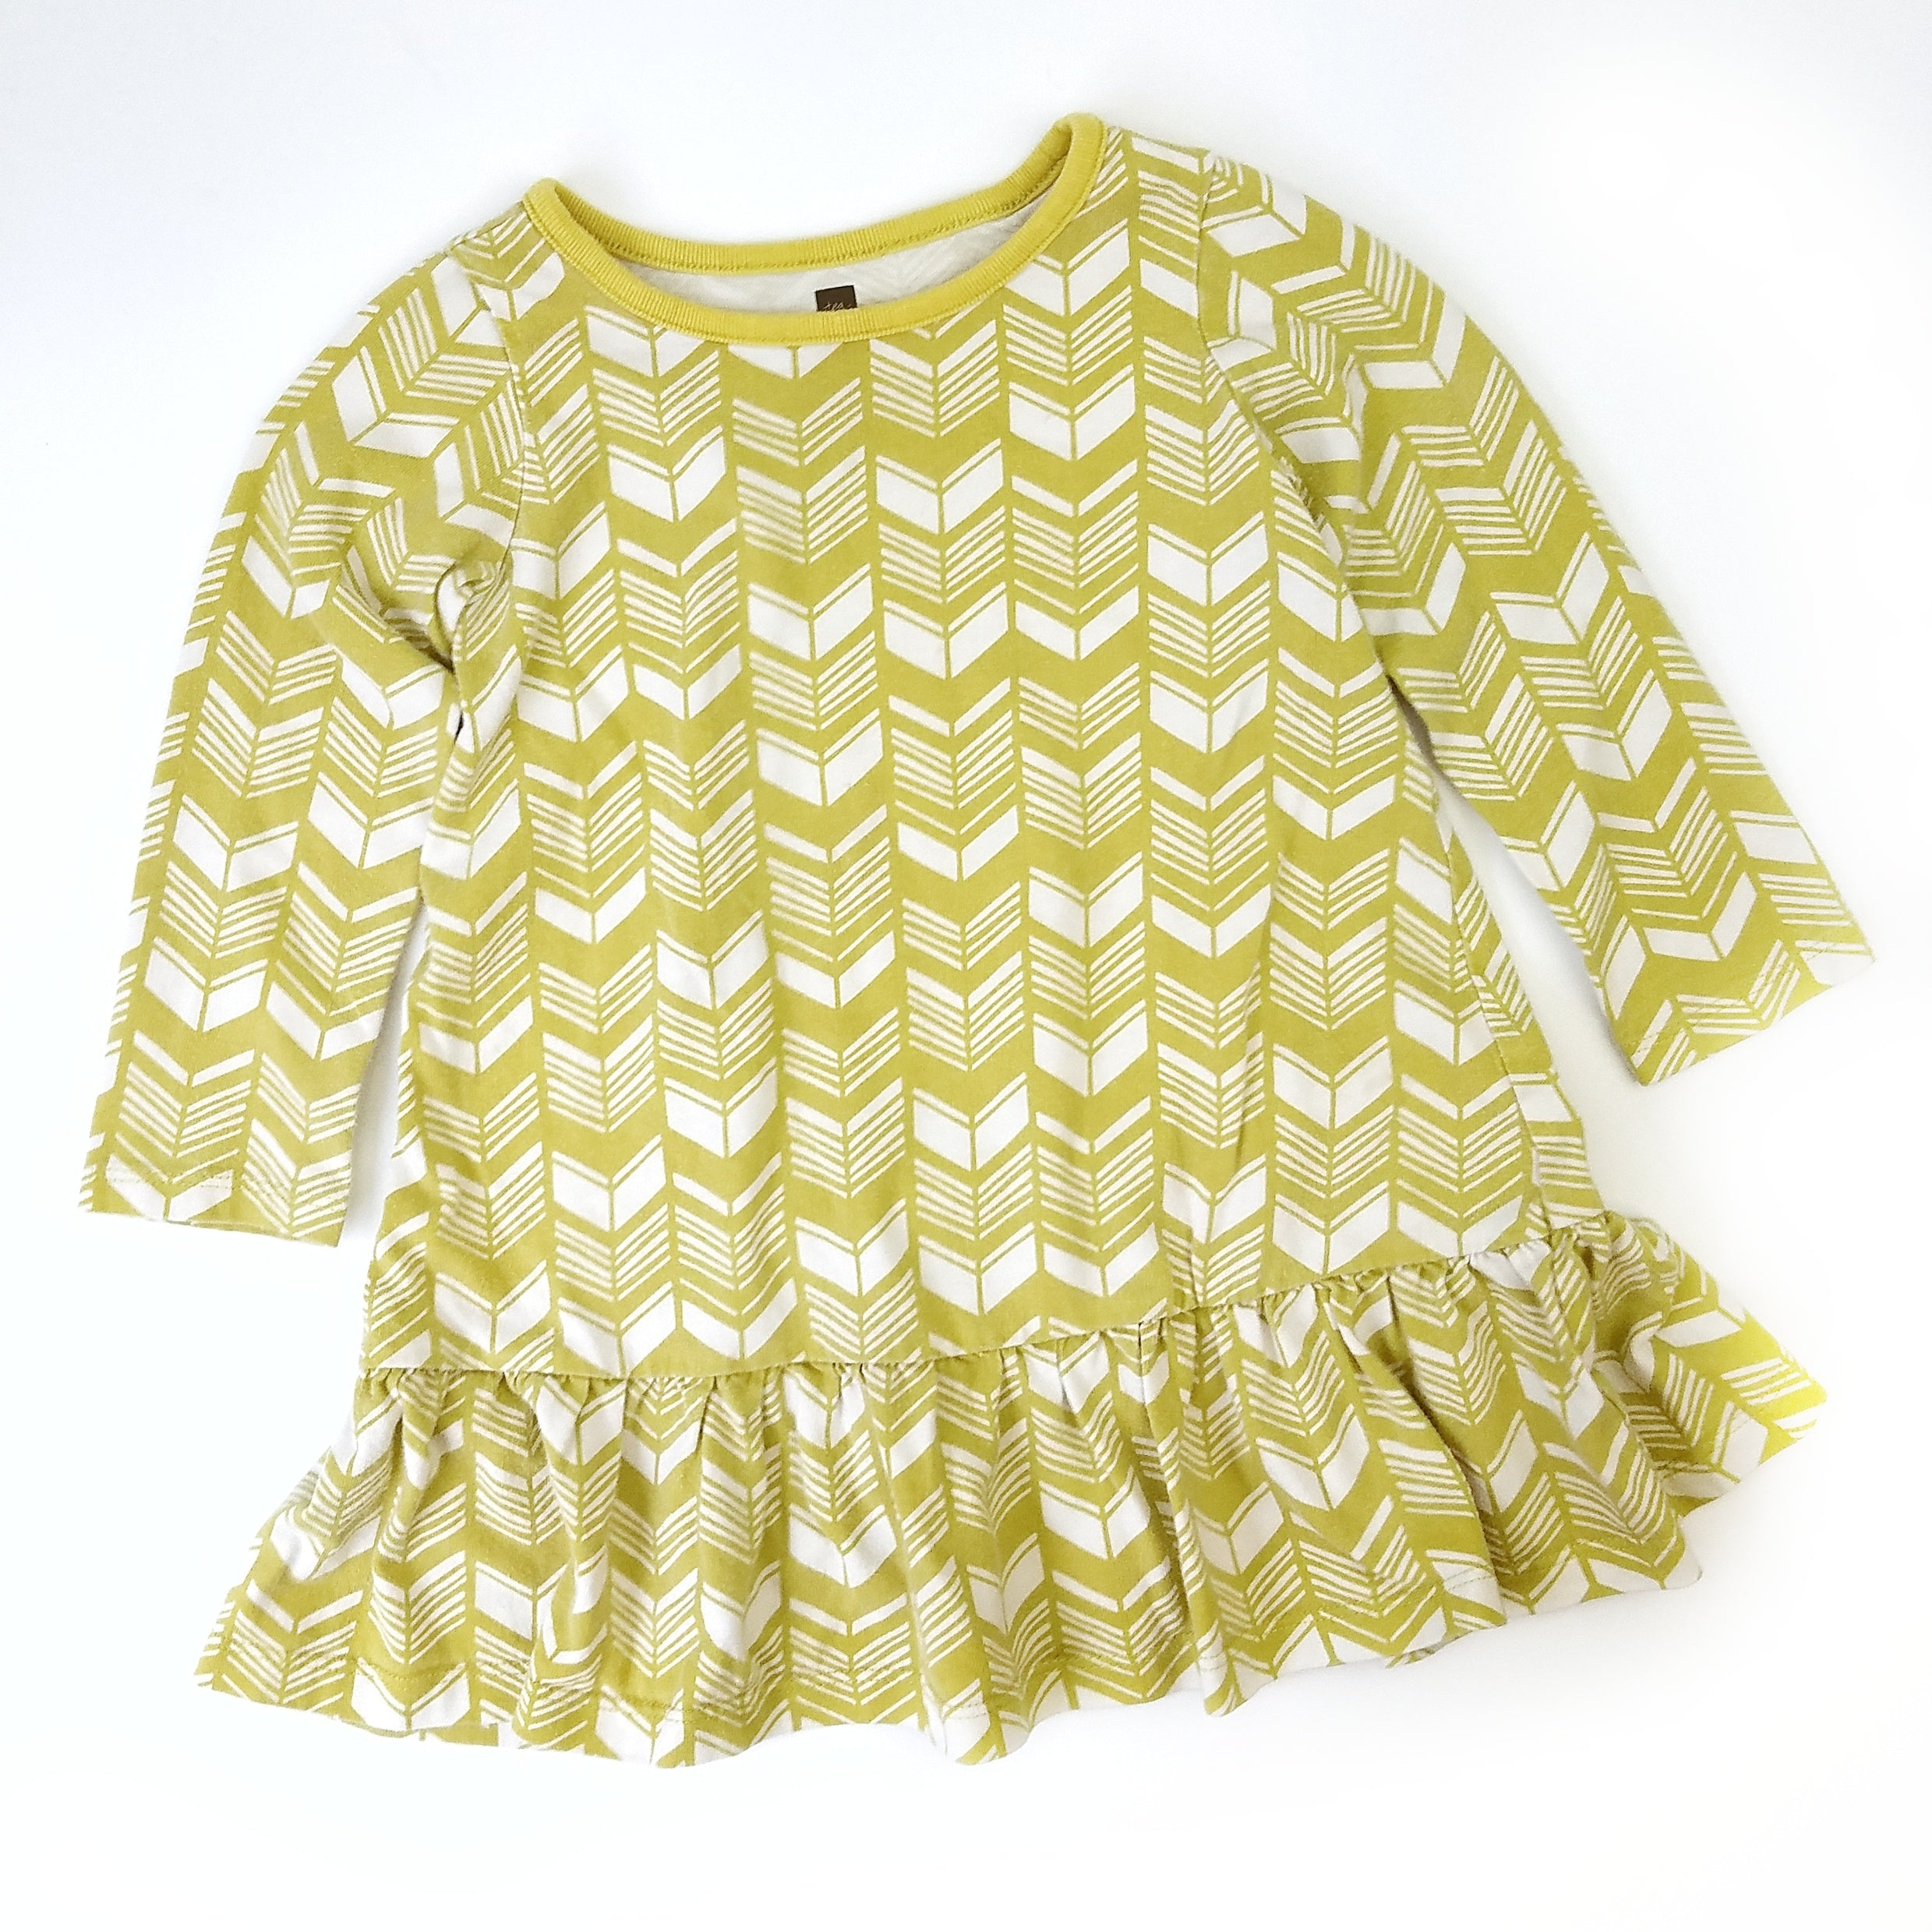 2T Mustard Geometric Drop Waist Dress - Wild Child